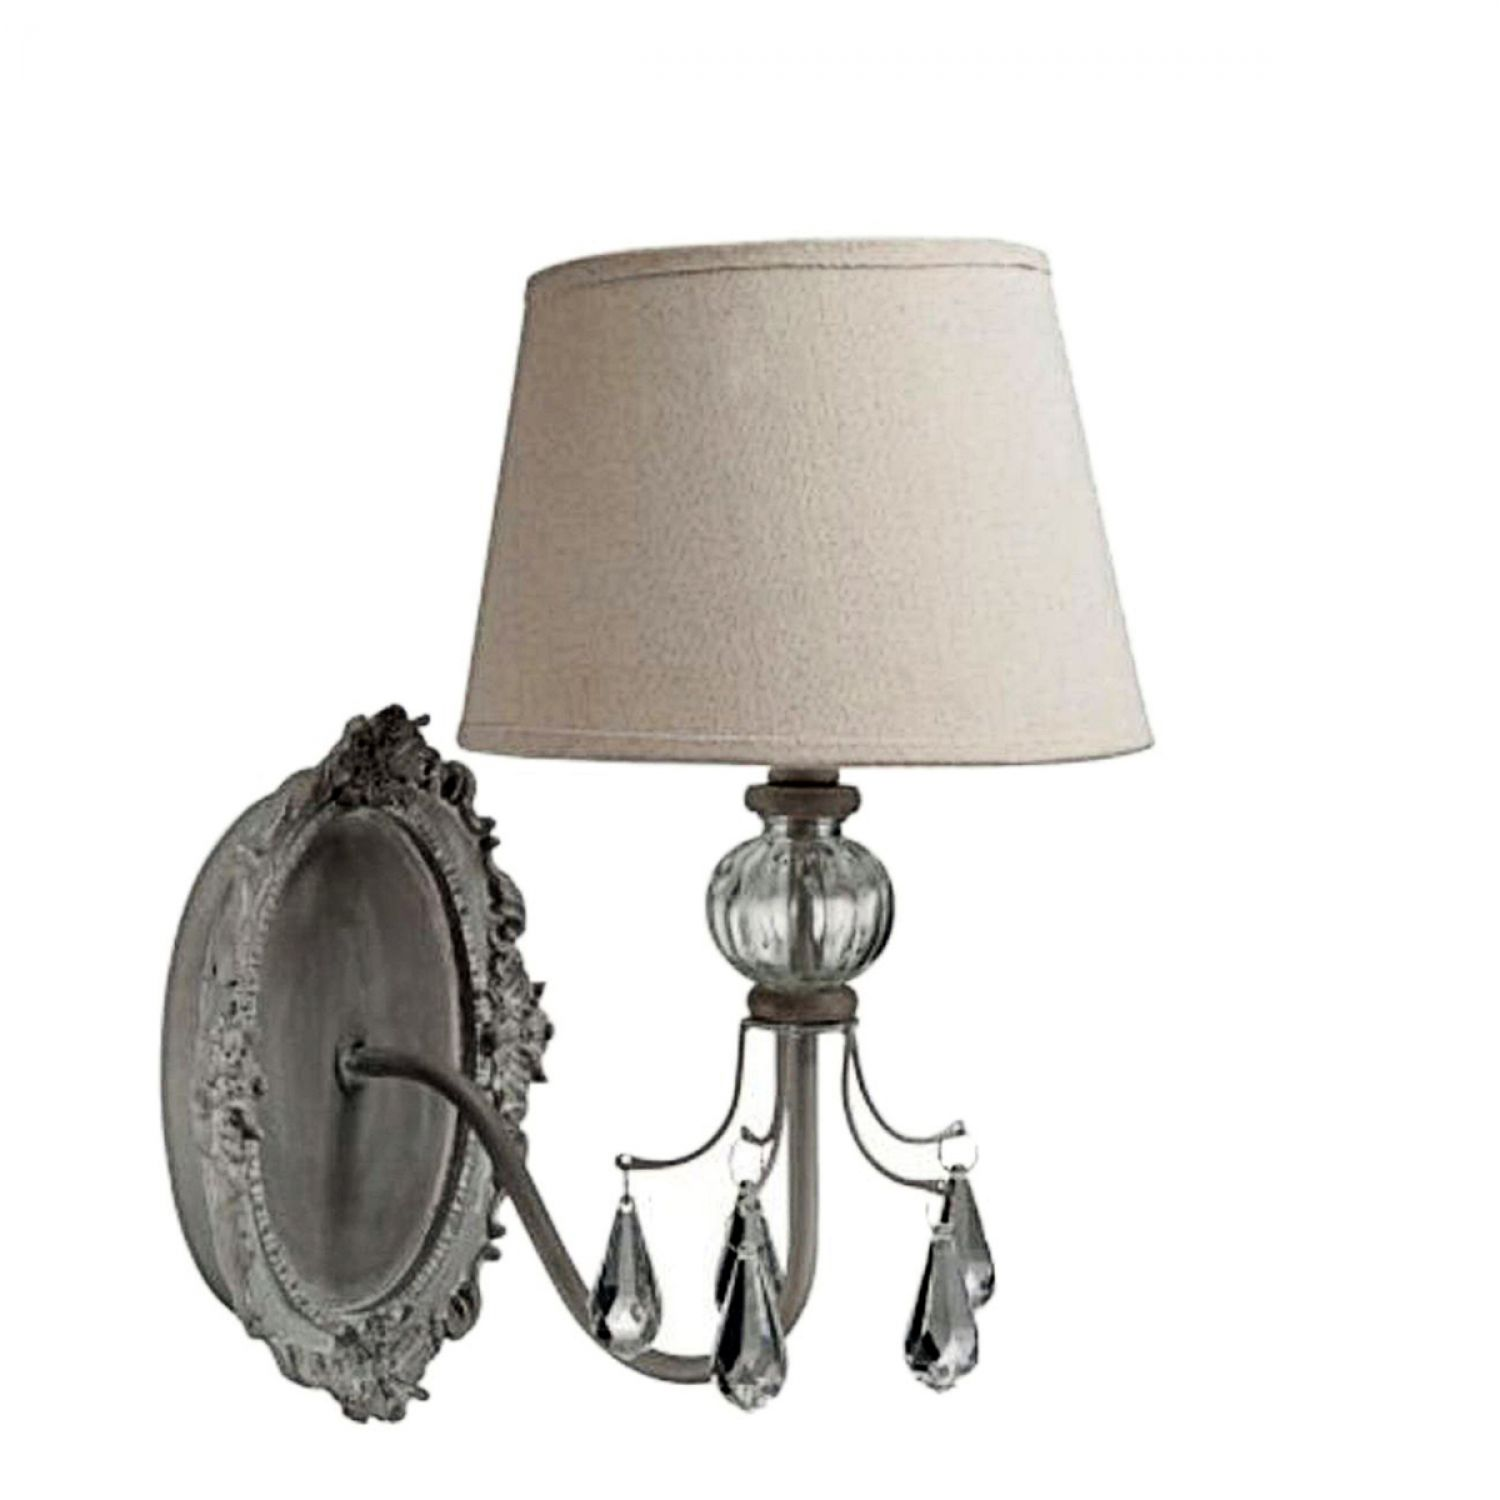 wandlampe wandleuchter antik vintage shabby landhaus wandleuchte wohnzimmer flur ebay. Black Bedroom Furniture Sets. Home Design Ideas